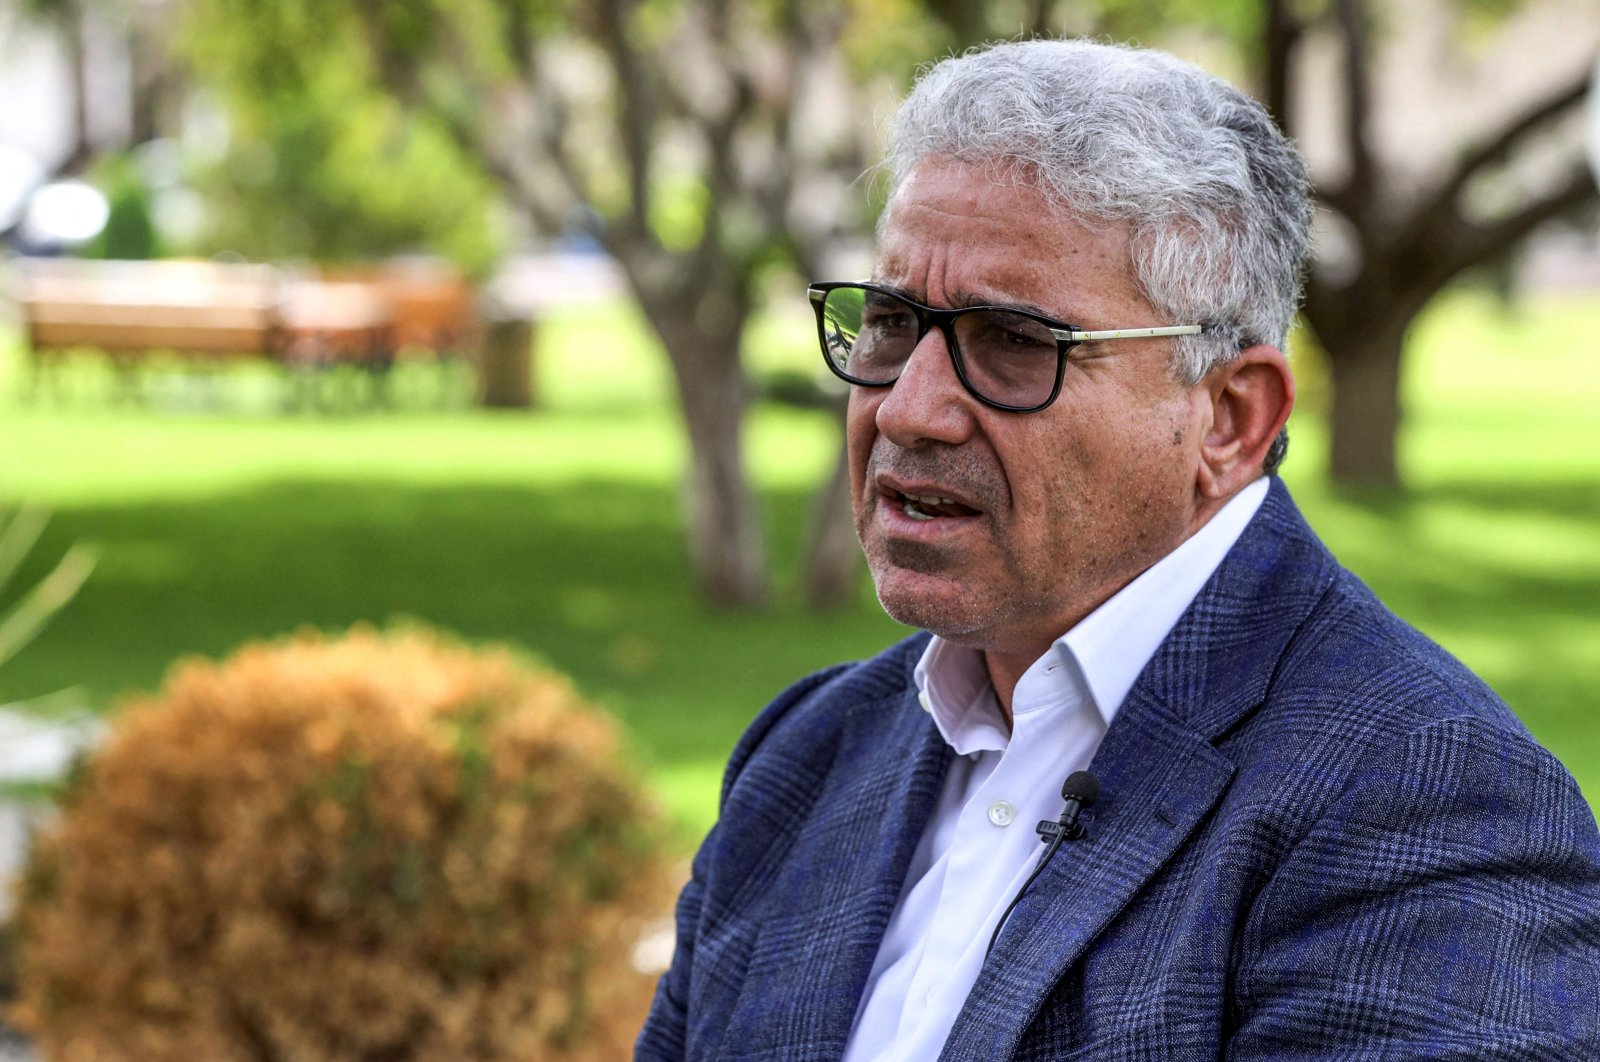 Fathi Bashagha, Libya's former interior minister, speaks during an interview with the AFP in the capital Tripoli, Libya, Oct. 6, 2021. (AFP Photo)